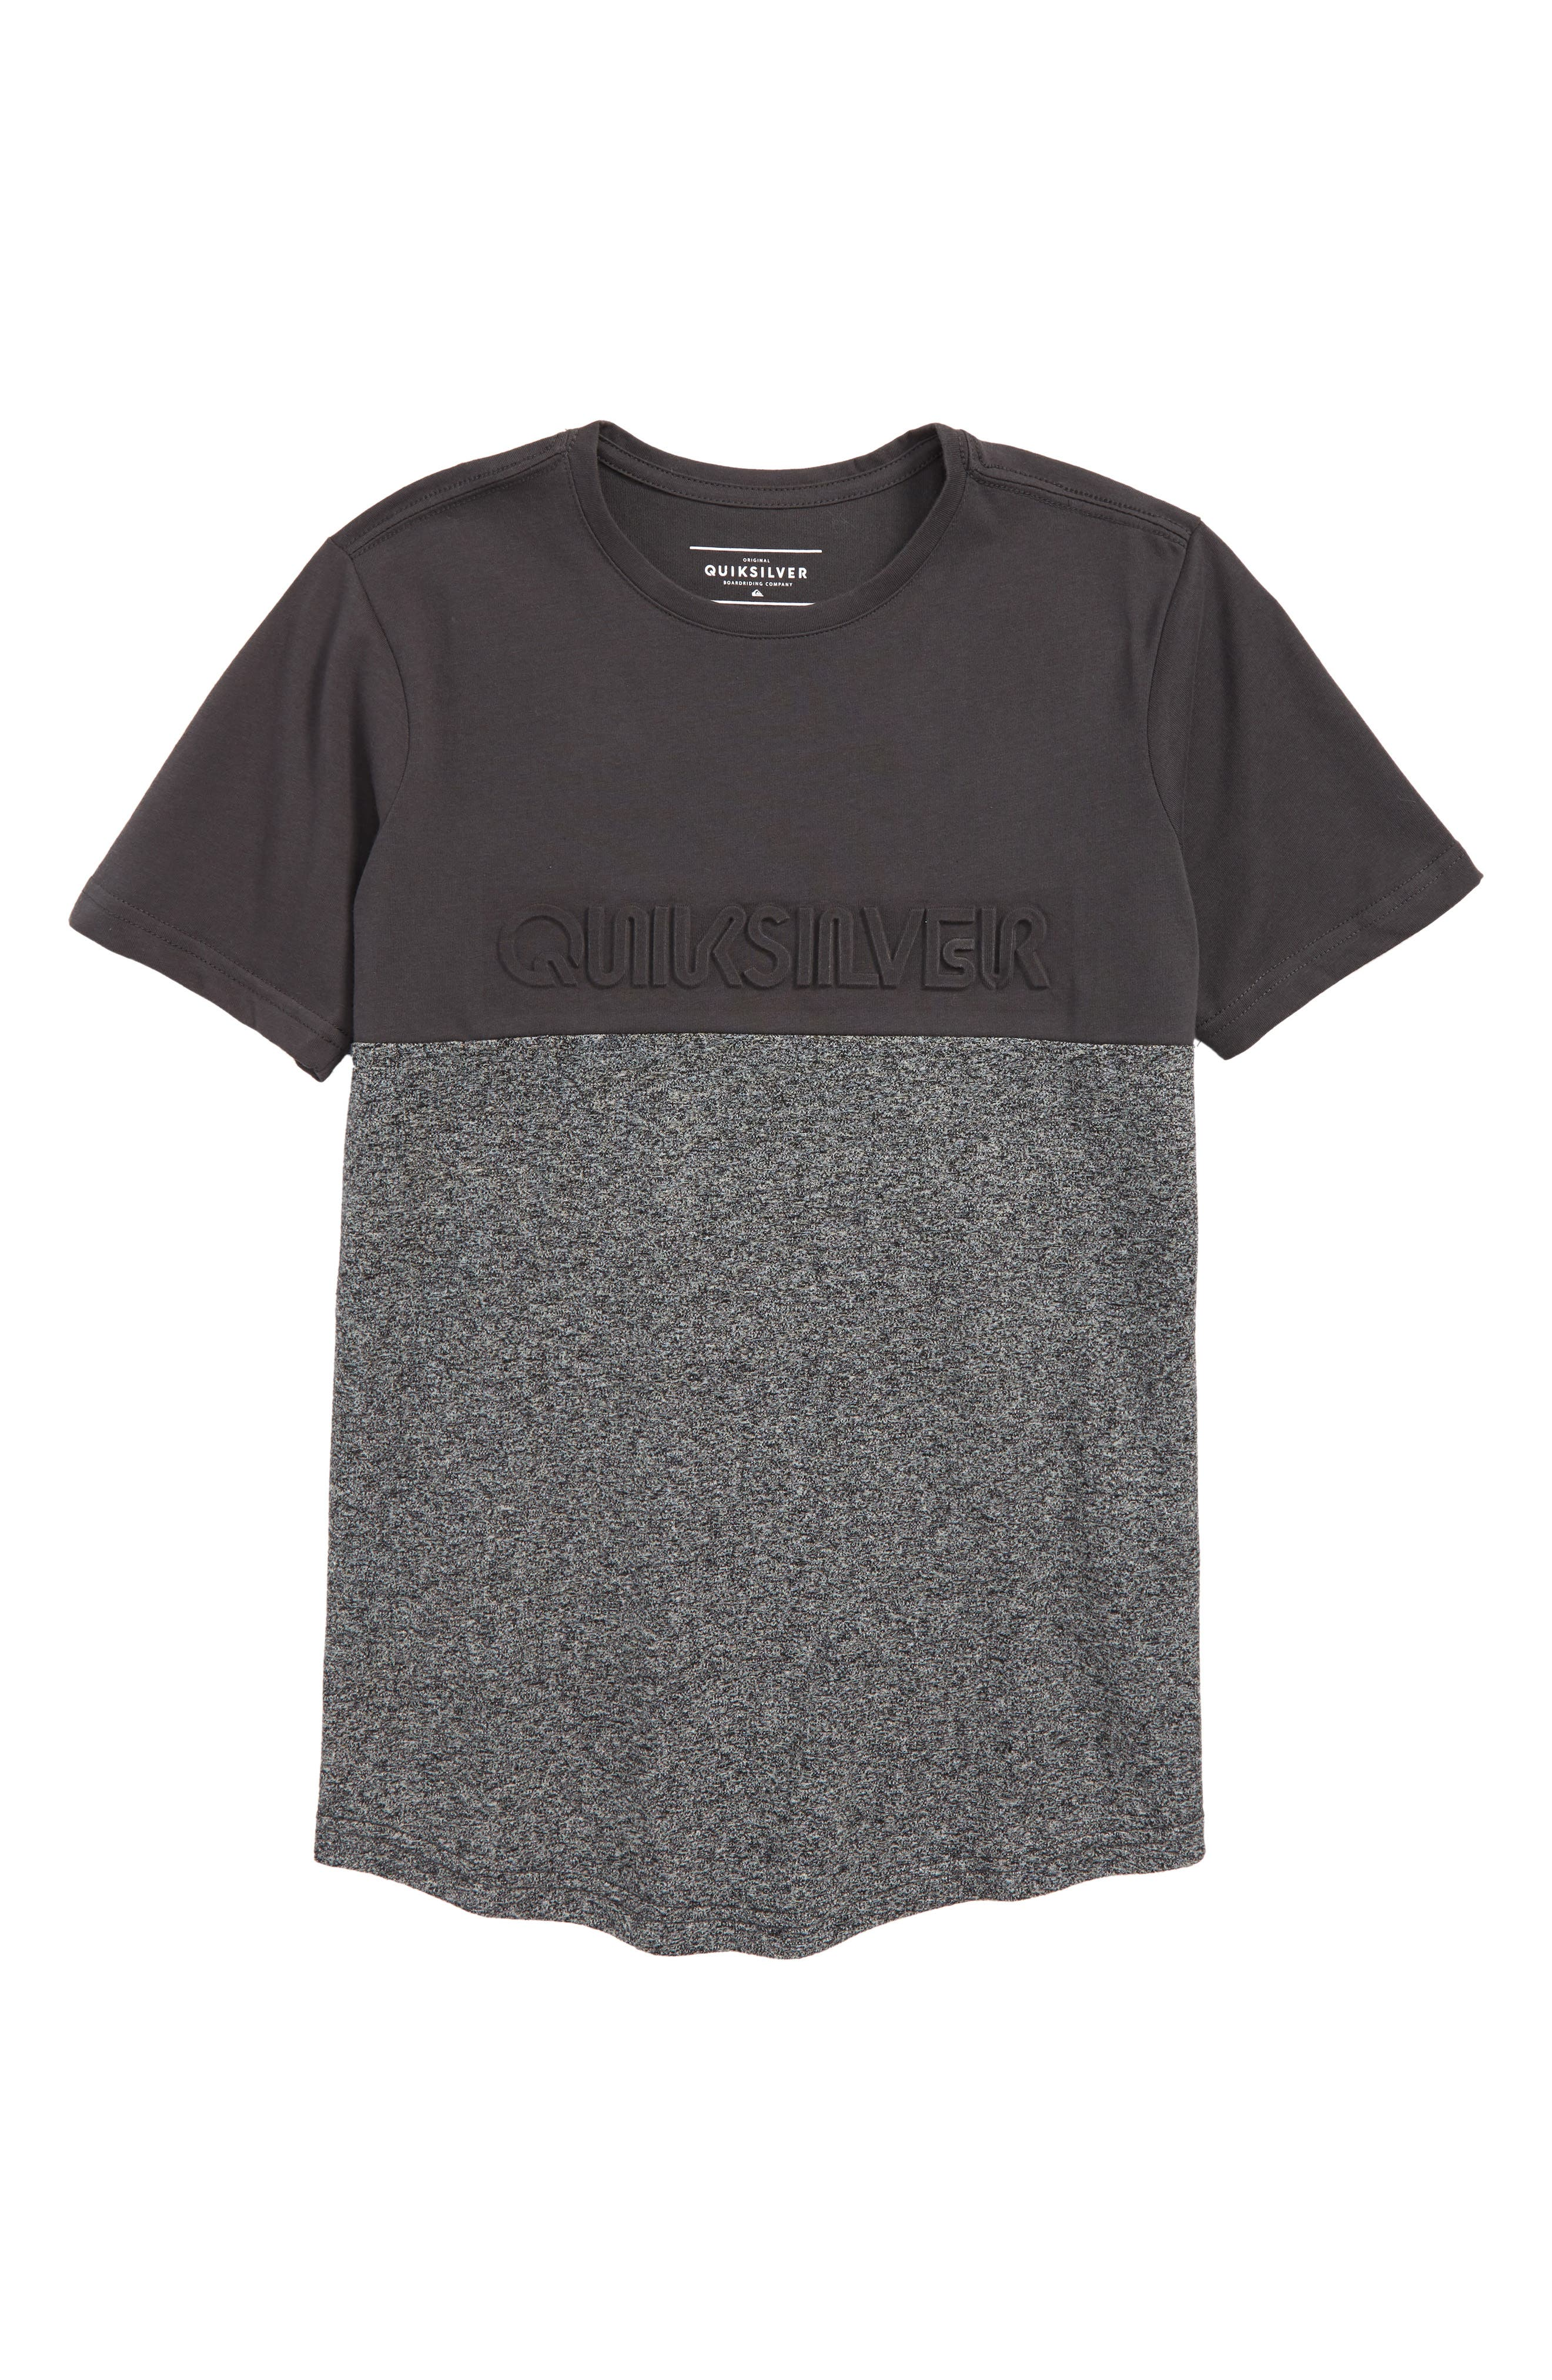 Kuju T-Shirt,                         Main,                         color, TARMAC